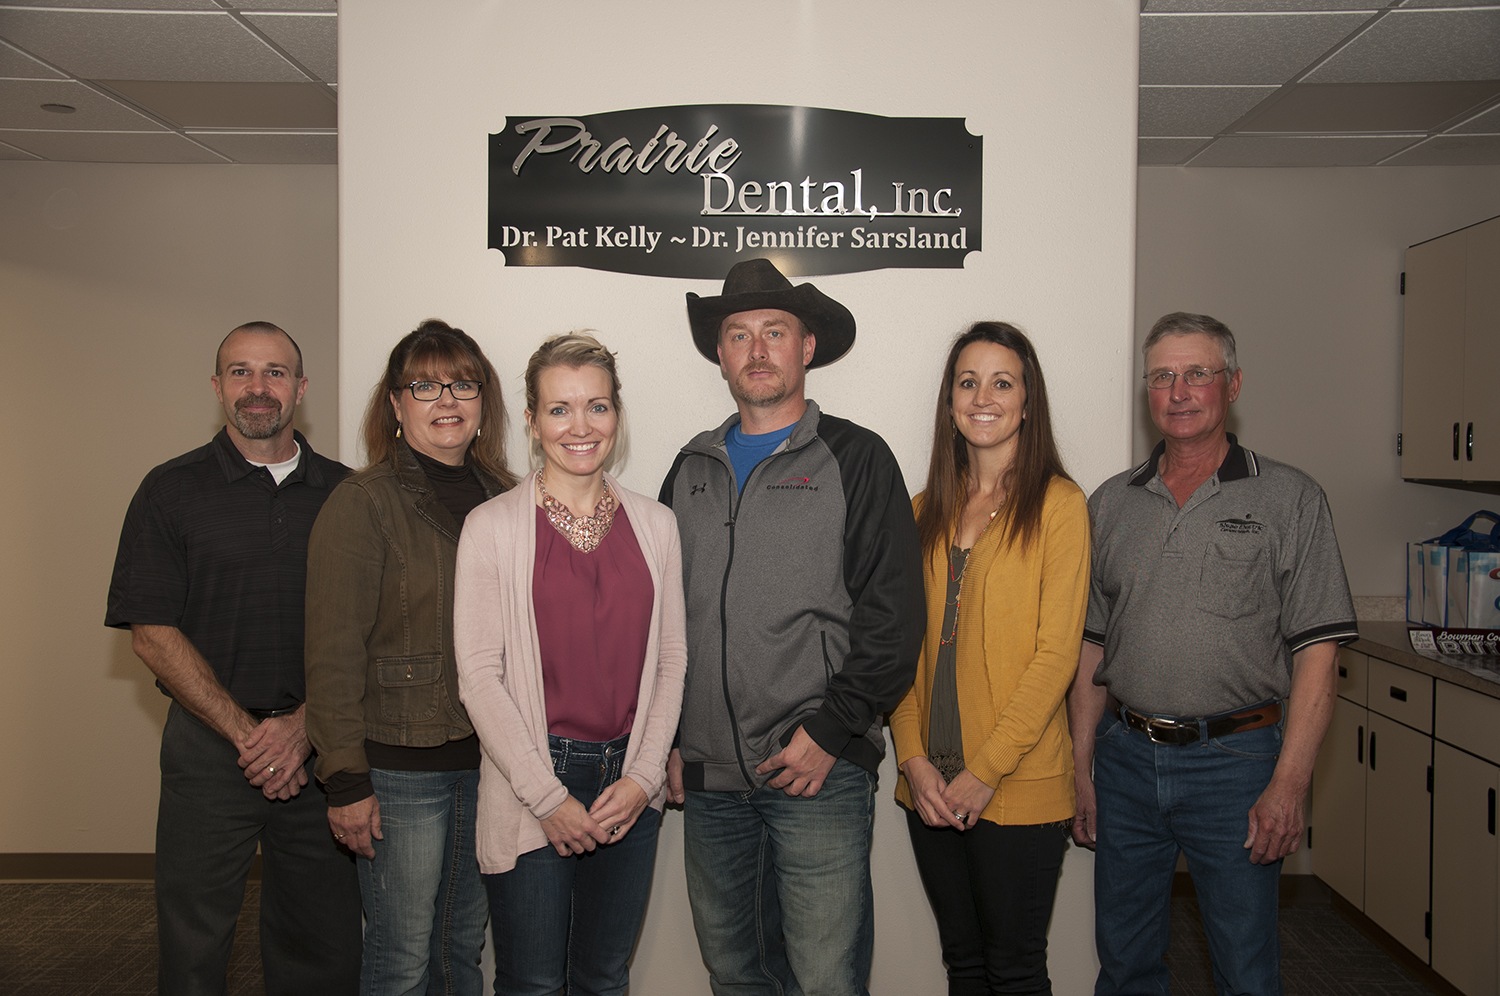 Rural electric and telephone cooperatives make RDFC programs possible. Pictured from L to R: Duane Bowman, Dakota Western Bank; Paula Anderson, RDFC; Teran Doerr, Bowman County Development Corporation; Scott Bachmeier, Consolidated Telecom; Dr. Jennifer Sarsland, Prairie Dental; Lauren Klewin, Slope Electric Cooperative.